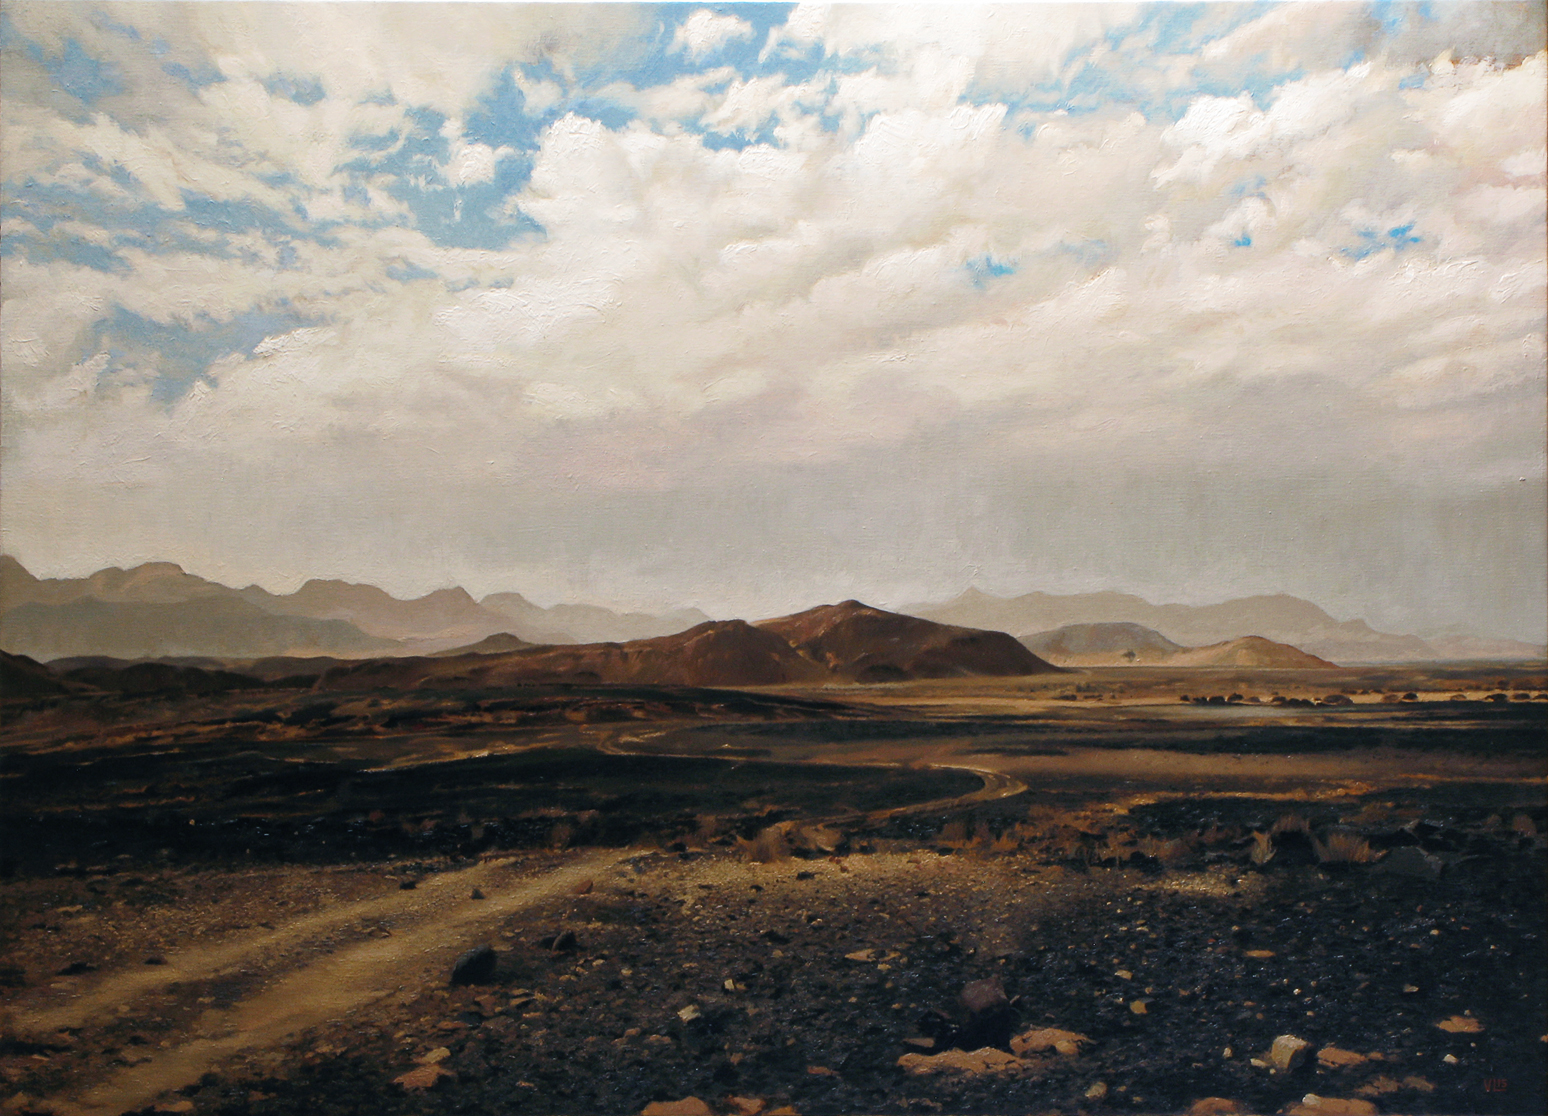 Damaraland, Namibia, 2015, 125 x 90, oil on canvas (medium)